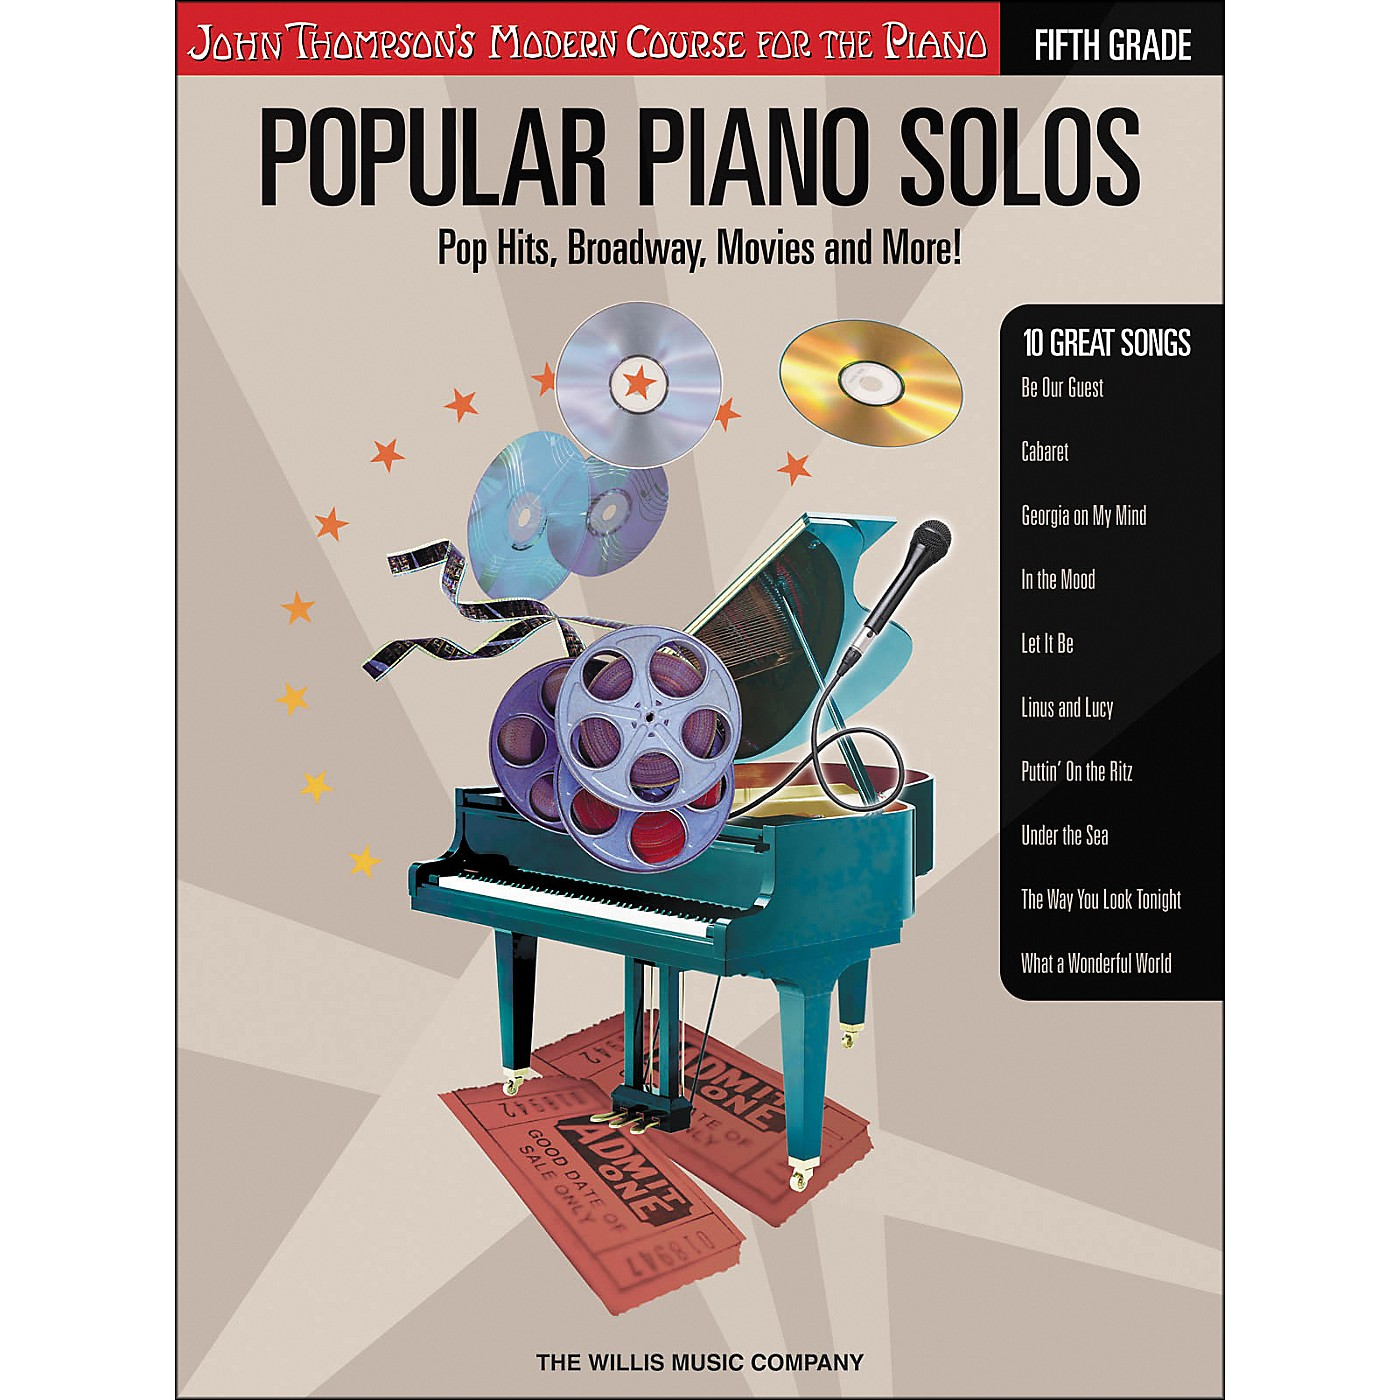 Willis Music John Thompson's Modern Course for The Piano - Popular Piano Solos Fifth Grade Book thumbnail